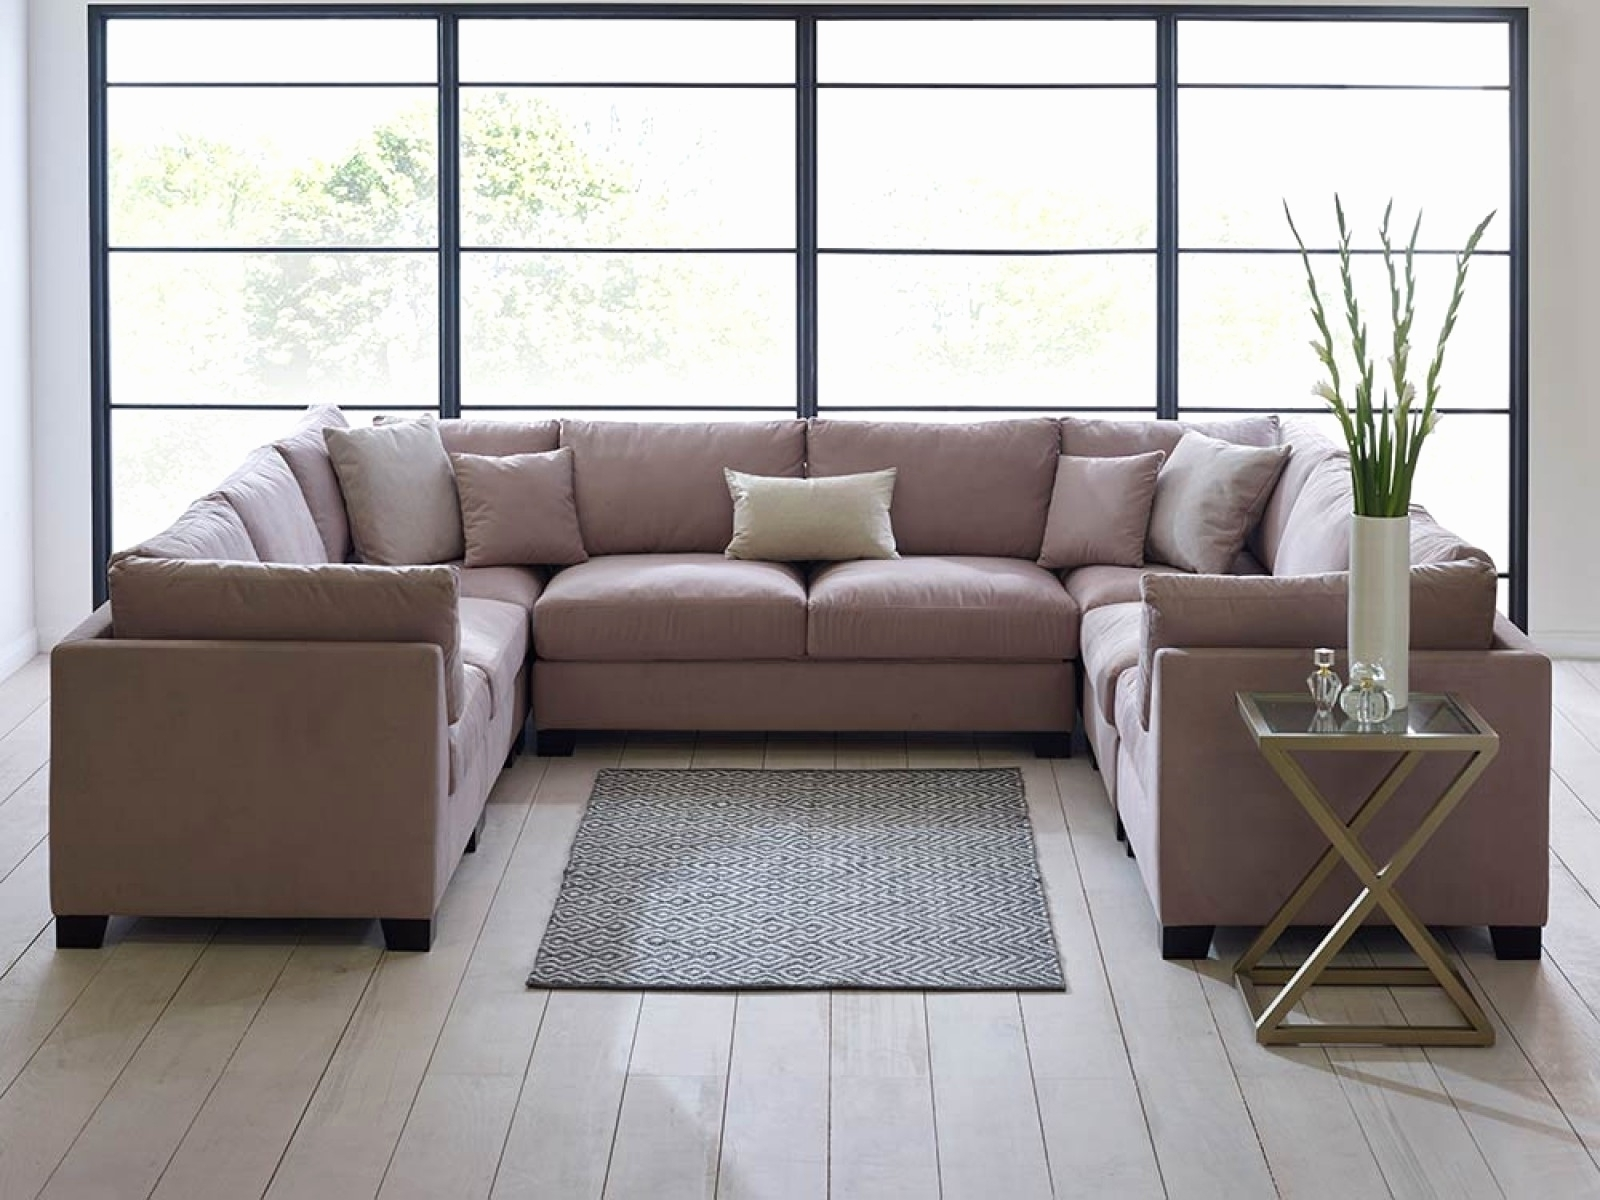 C Shaped Sectional Sofa In Favorite C Shaped Sofas (View 6 of 20)